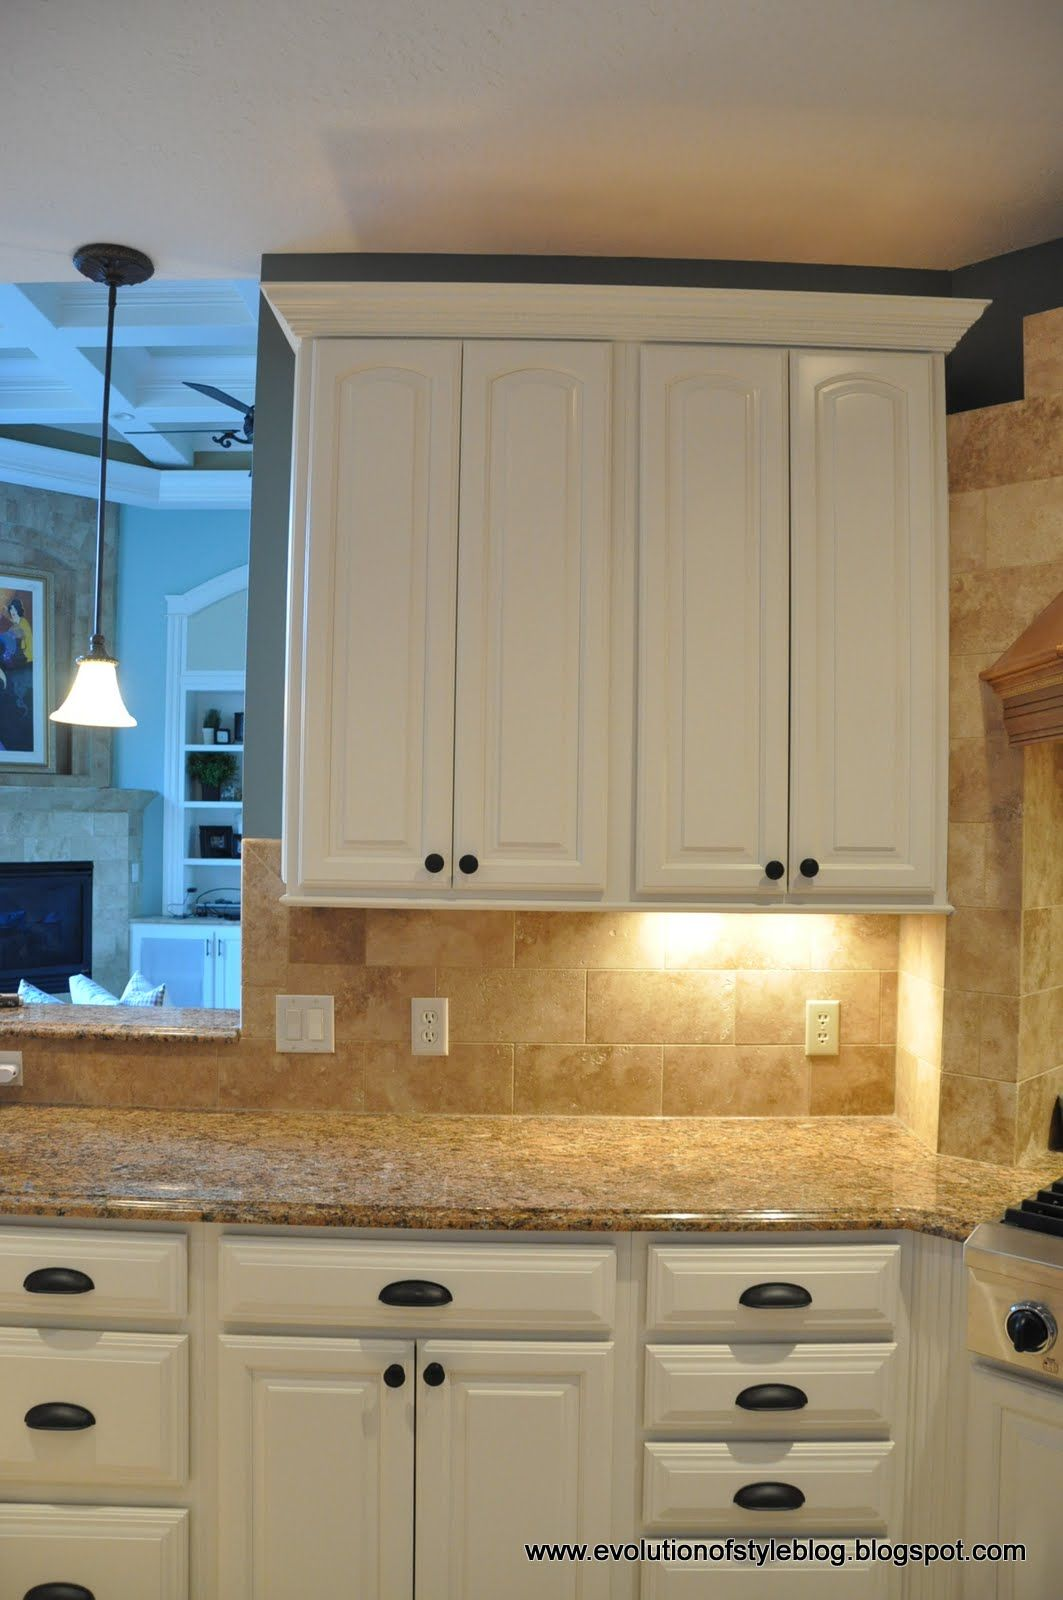 How To Paint Your Kitchen Cabinets Like A Pro Paint Kitchen Cabinets Like A Pro Refurbished Kitchen Cabinets Refinish Kitchen Cabinets